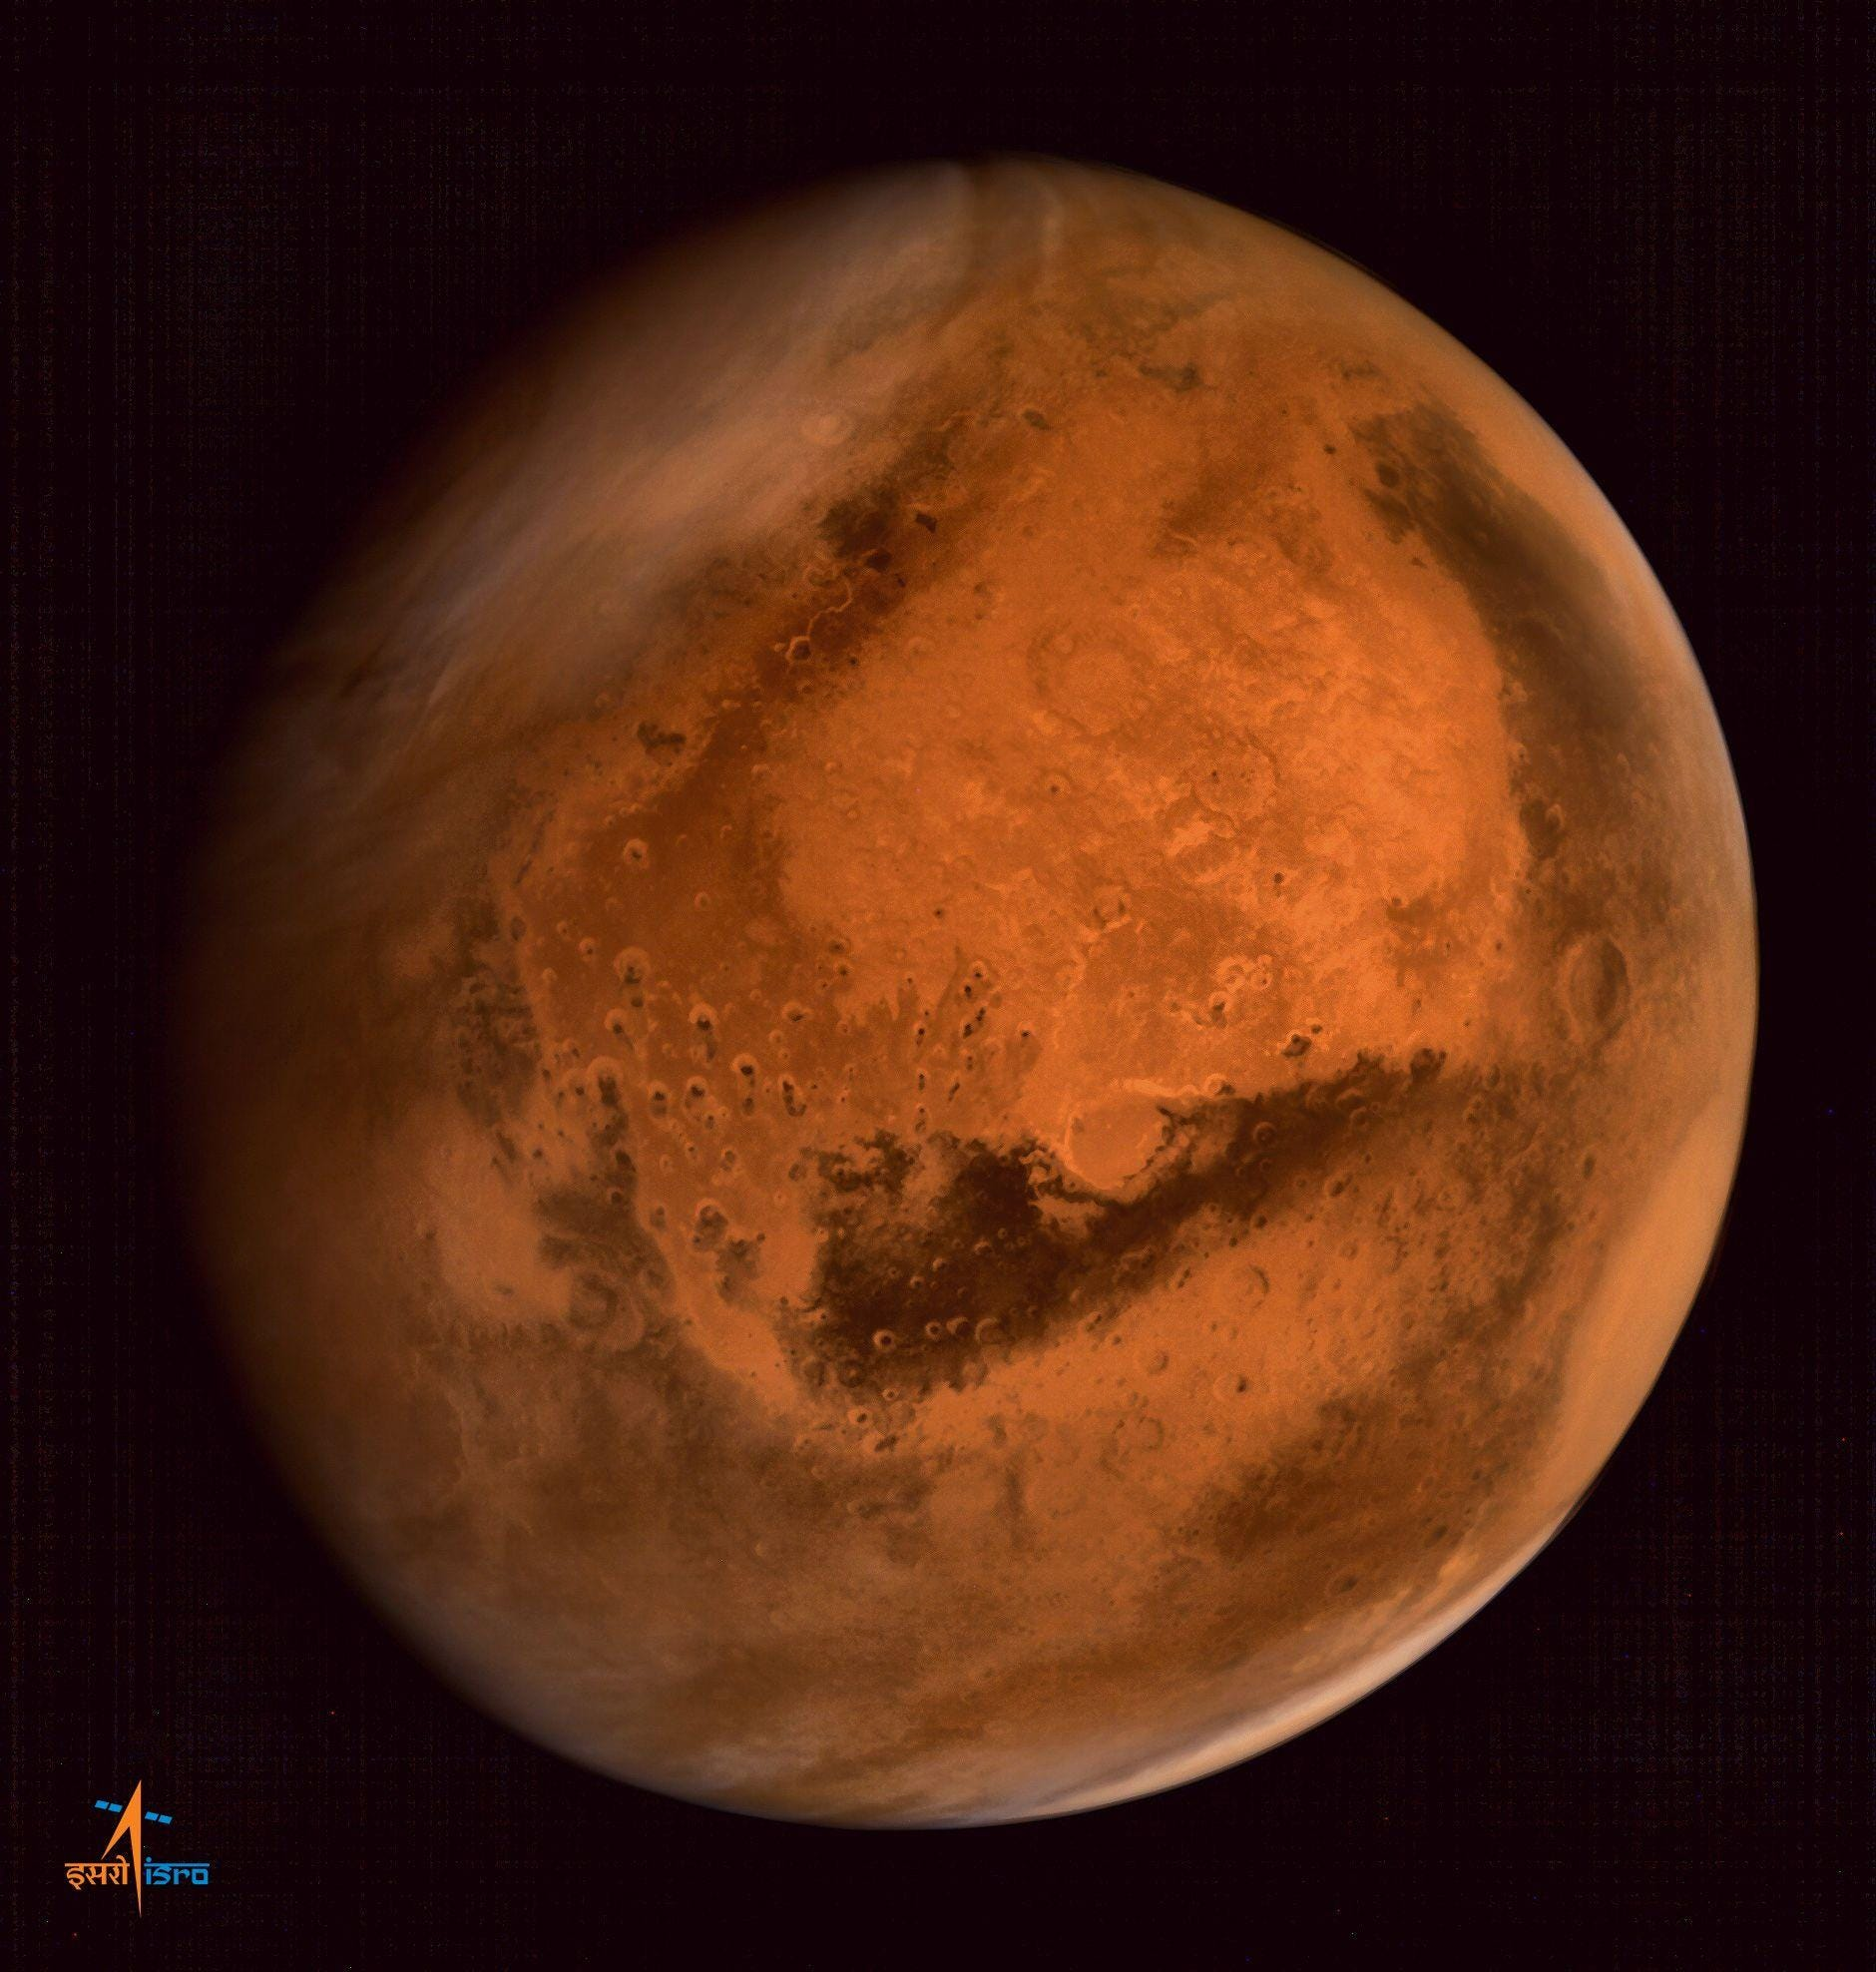 Martian water could have enough oxygen to support life